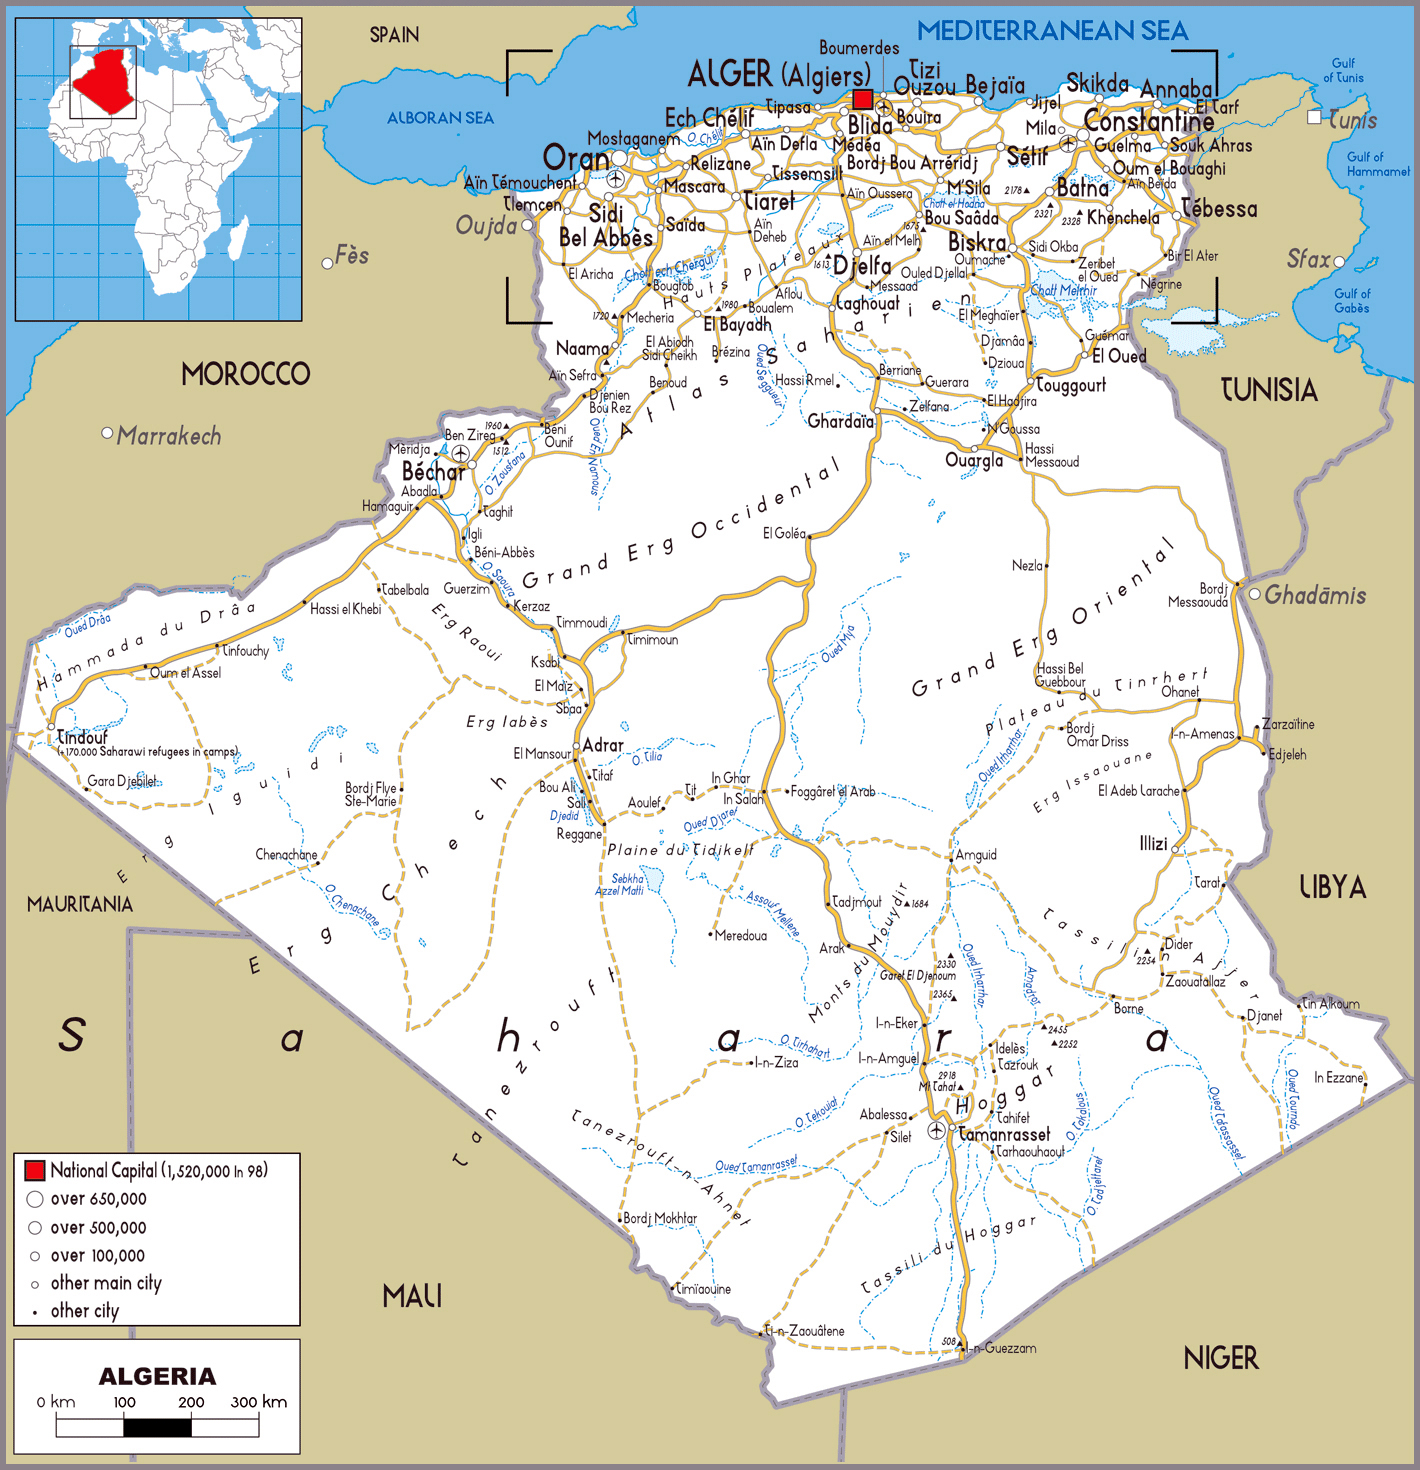 Algeria Detailed Political And Road Map Detailed Political And - Political map of algeria